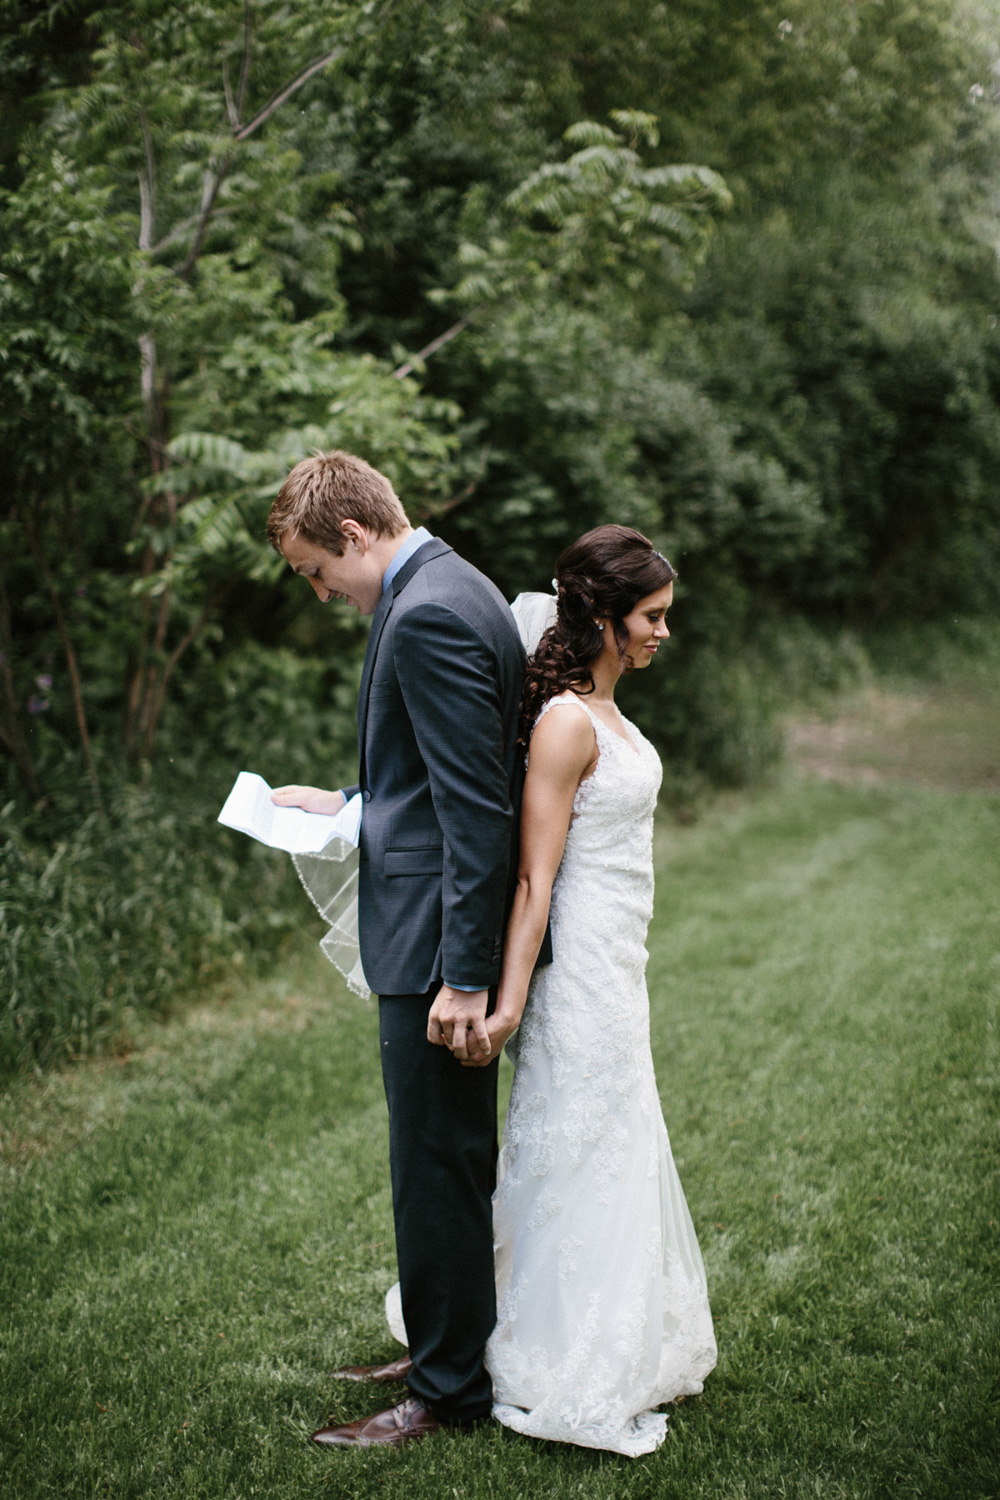 Outdoor_Wedding_SiouxFalls_MaryJoWegnerArboretum_Photographer_Calli&Jon_033.jpg